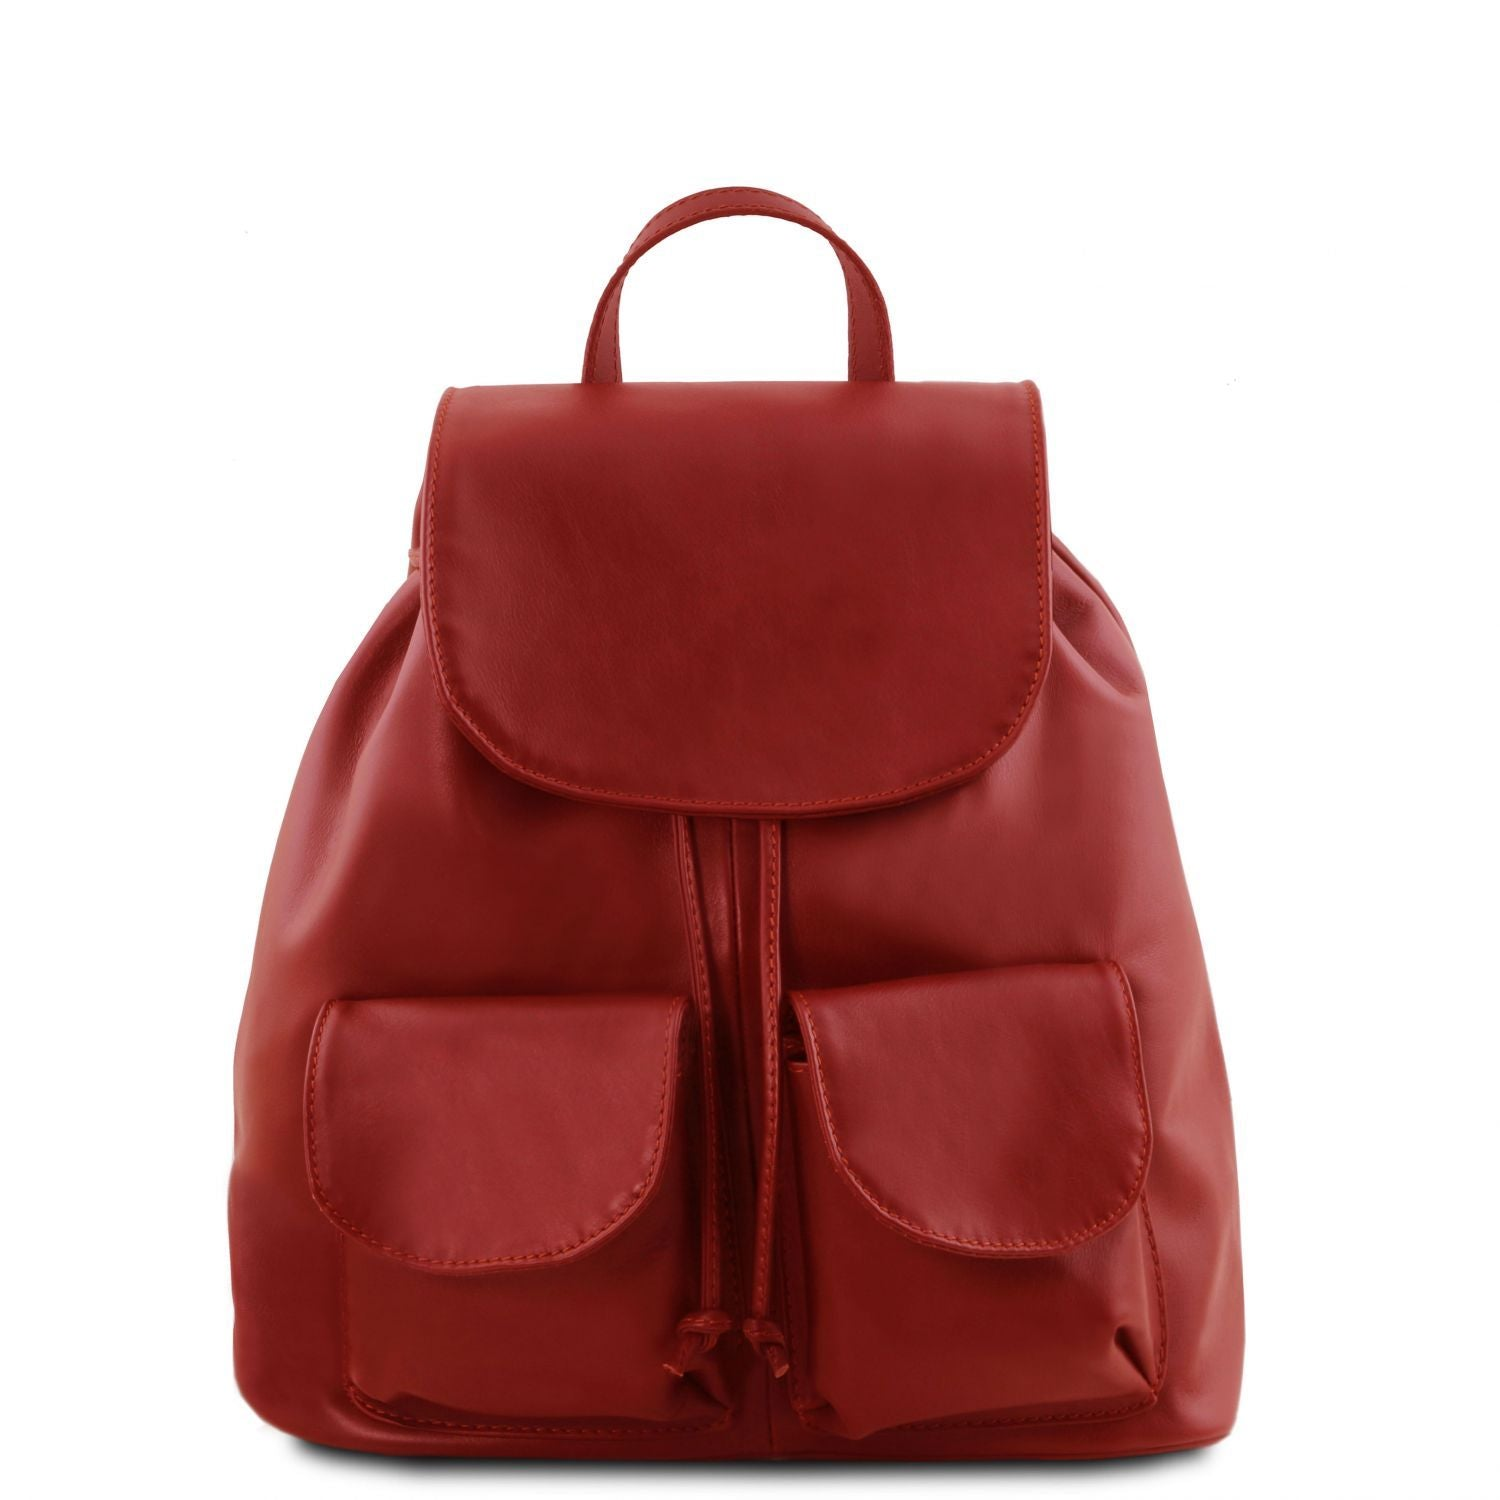 Seoul - Leather backpack - Small size (TL141508) - DILUSSOBAGS